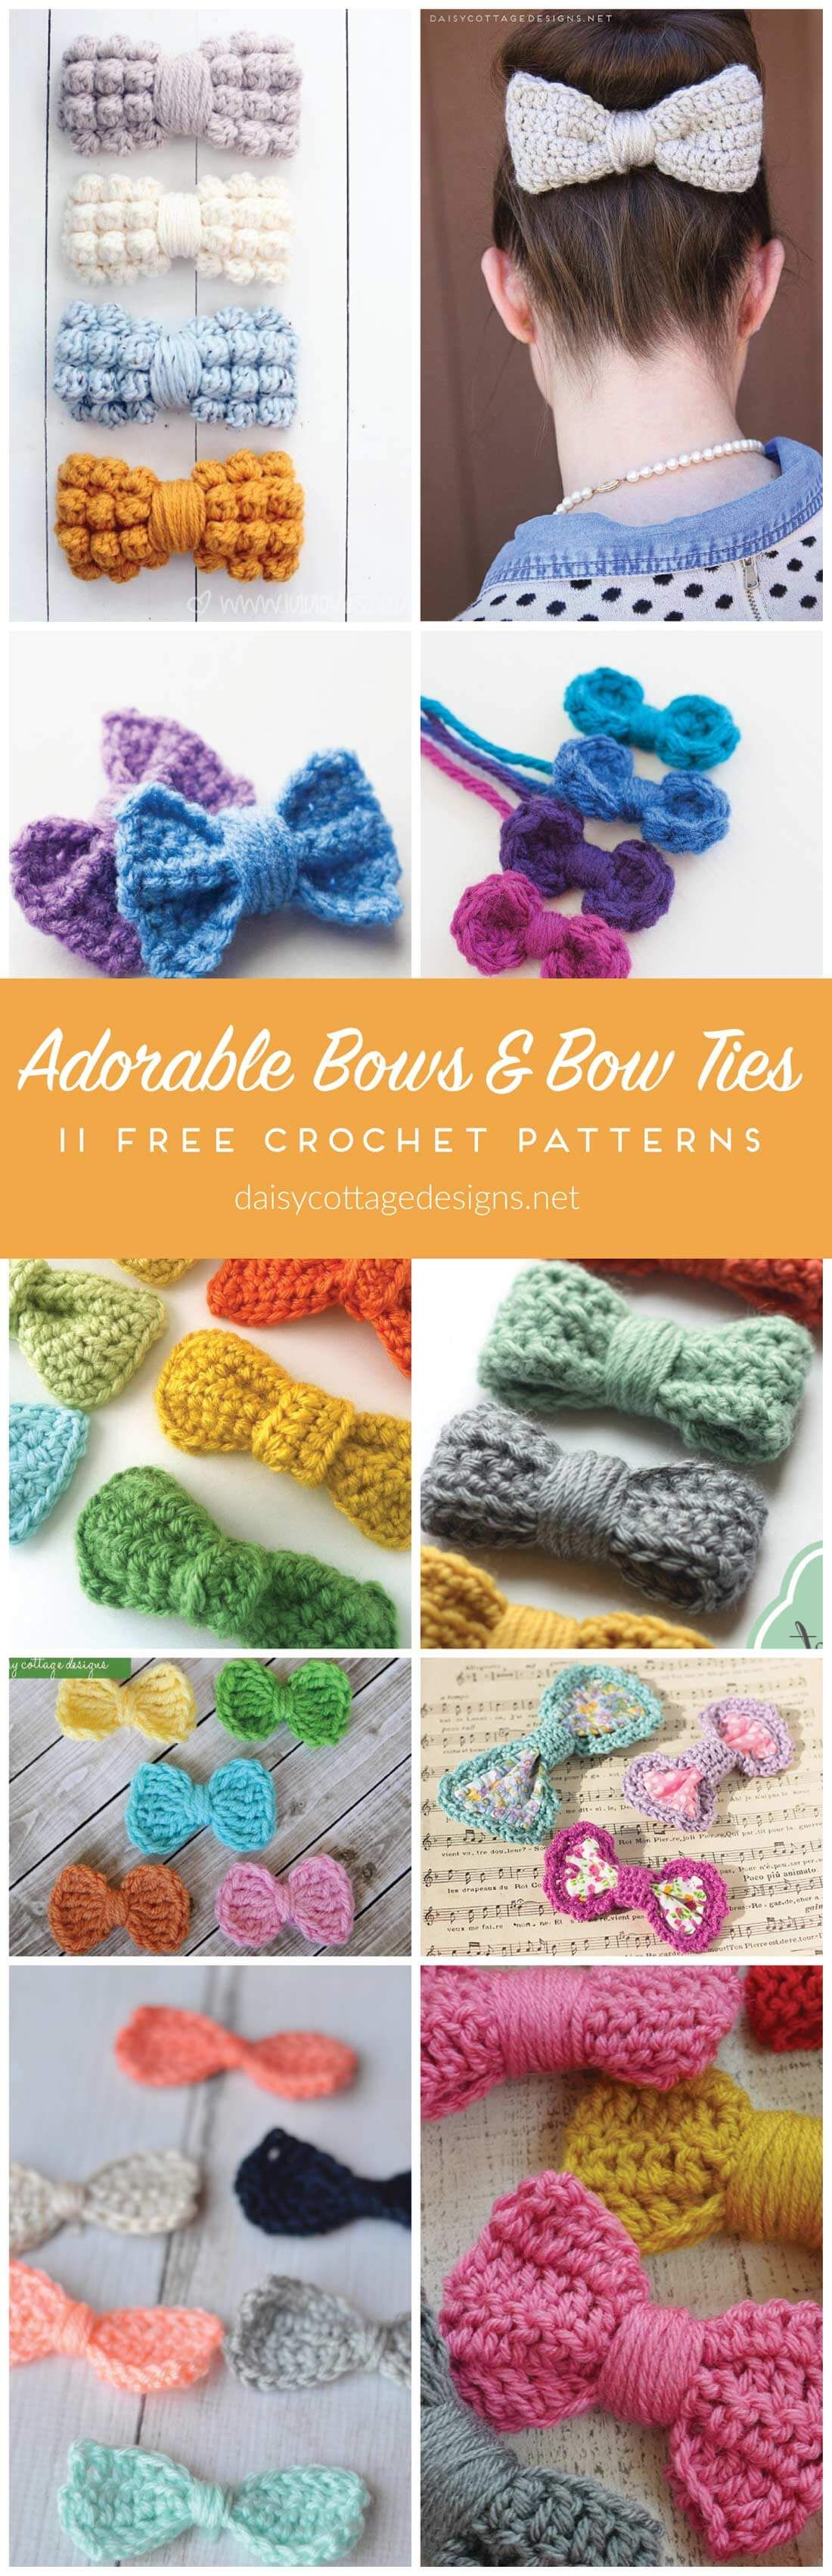 Crochet Bow and Bow Tie Pattern Collection from | Häkeln ideen ...